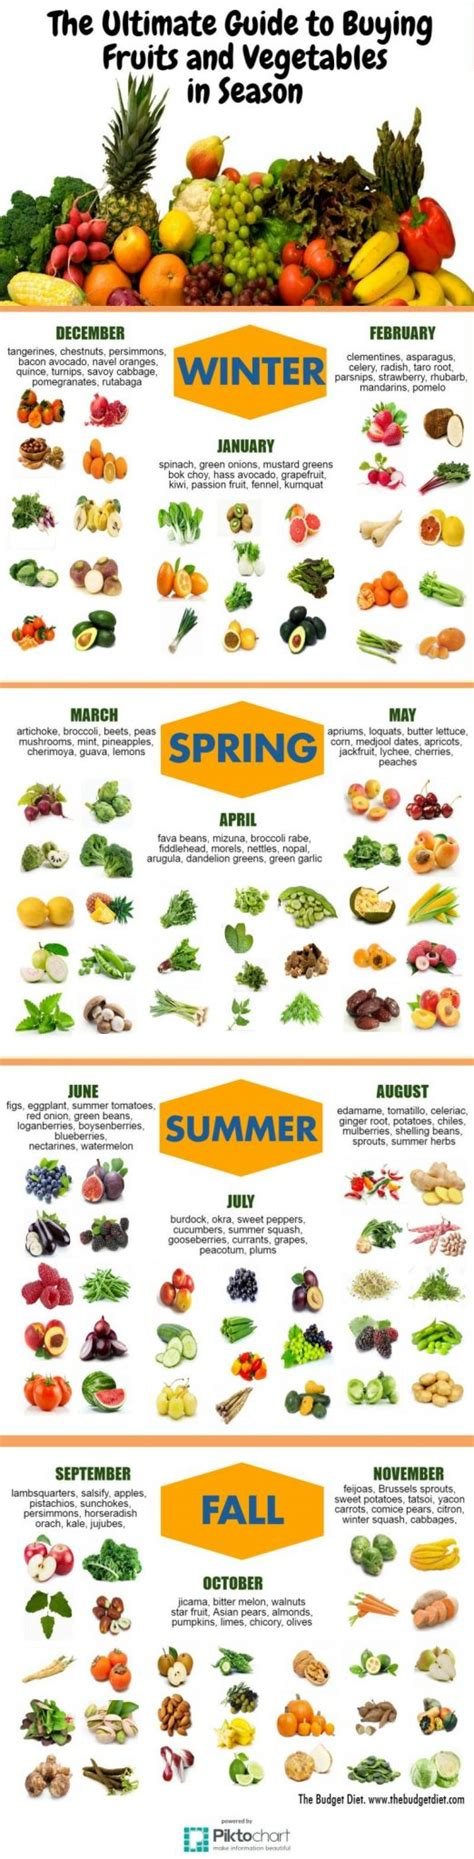 vegetables and fruits in season the ultimate guide to buying fruits and vegetables in